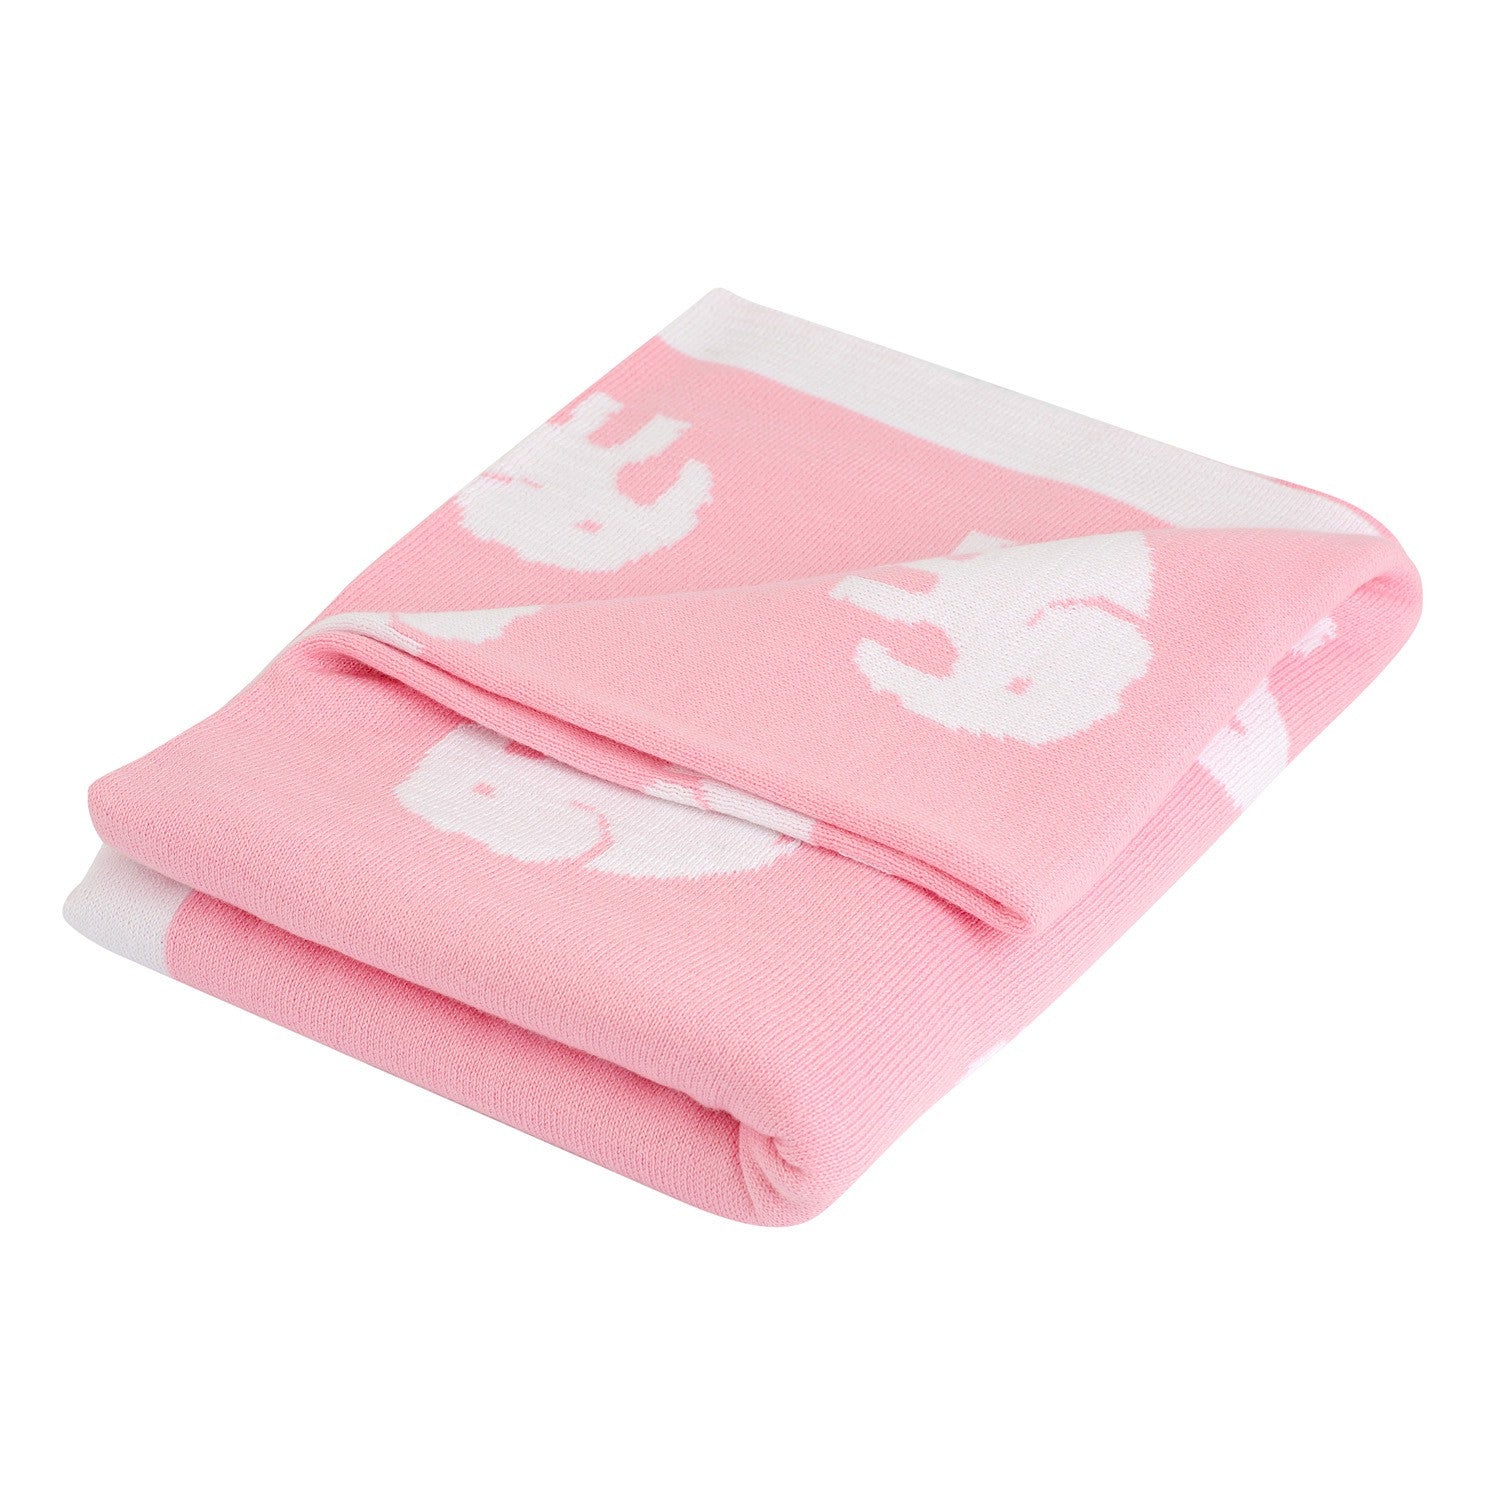 Baby & Toddler Elephant Blanket – Pretty in Pale Pink & White